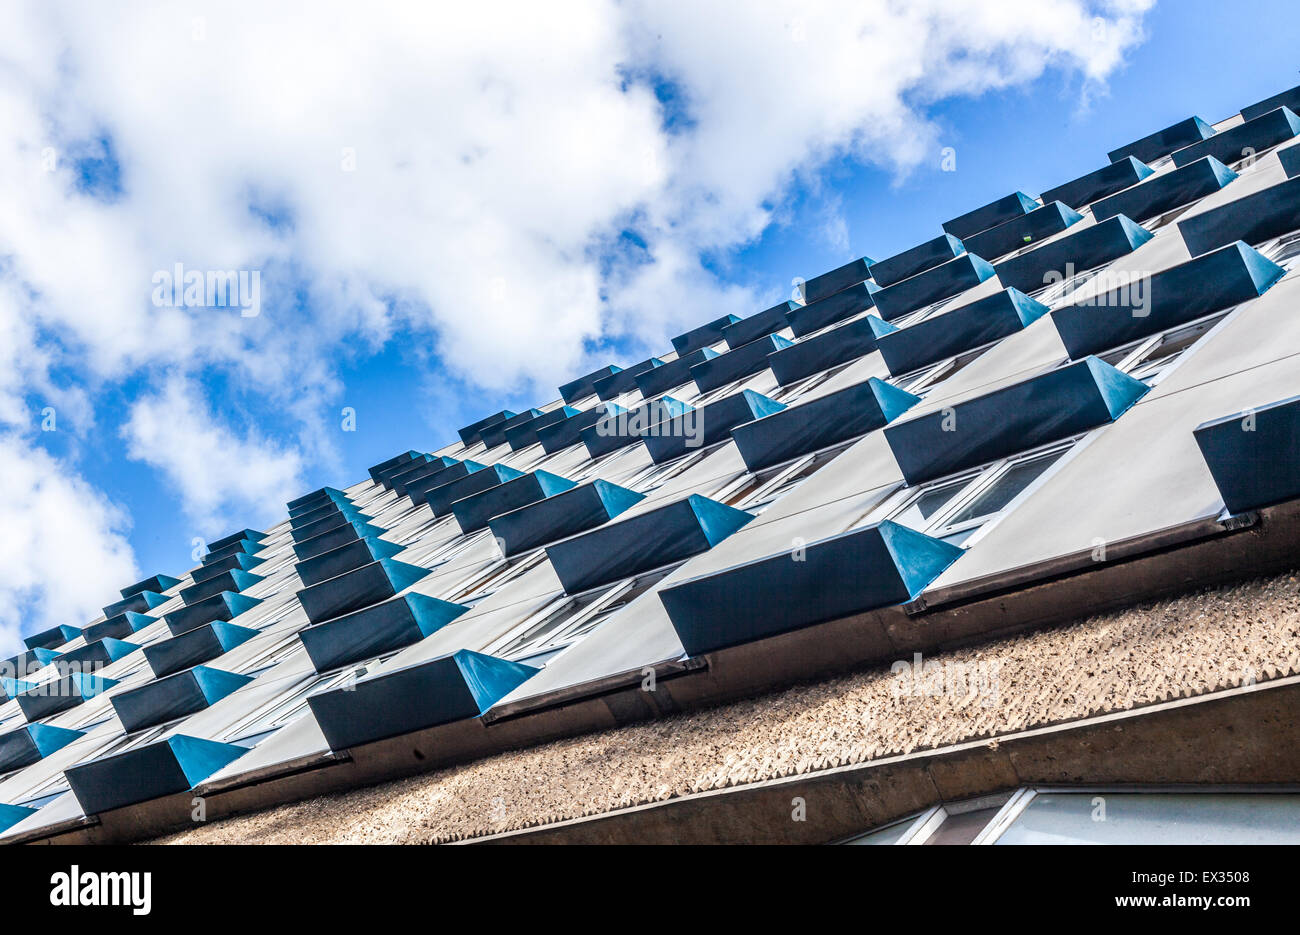 fenestration pattern on a building - Stock Image